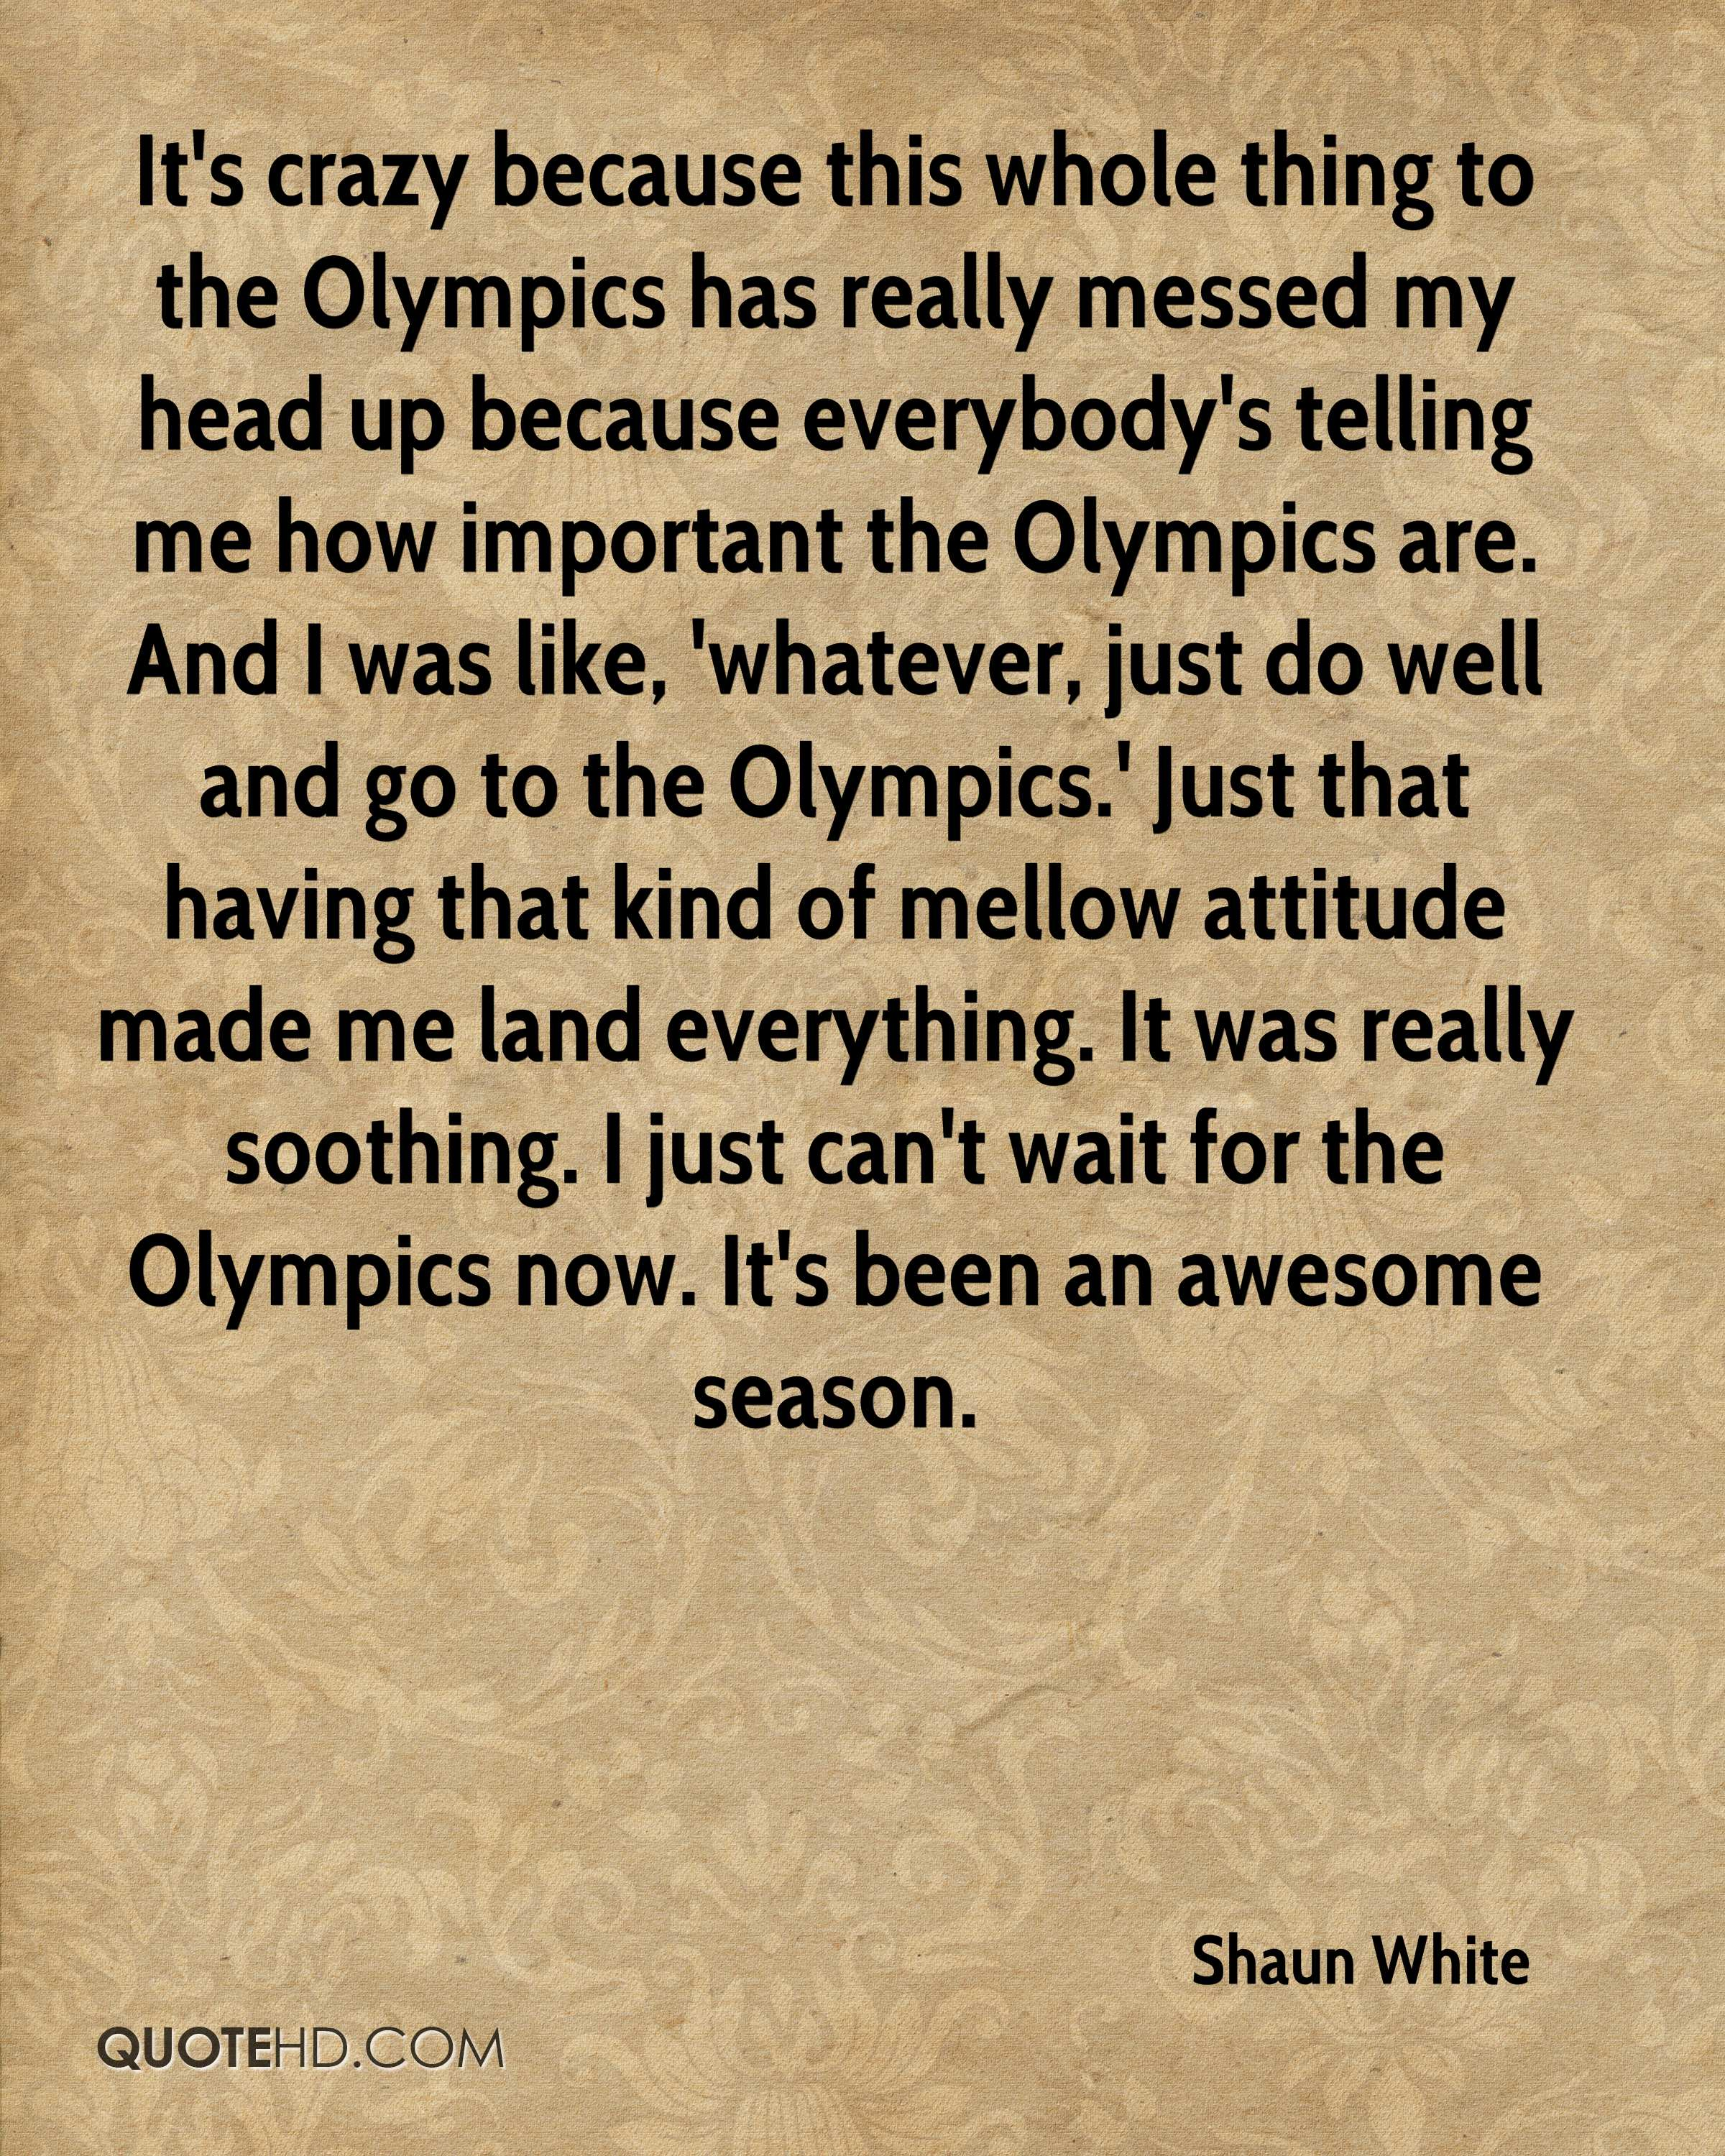 It's crazy because this whole thing to the Olympics has really messed my head up because everybody's telling me how important the Olympics are. And I was like, 'whatever, just do well and go to the Olympics.' Just that having that kind of mellow attitude made me land everything. It was really soothing. I just can't wait for the Olympics now. It's been an awesome season.